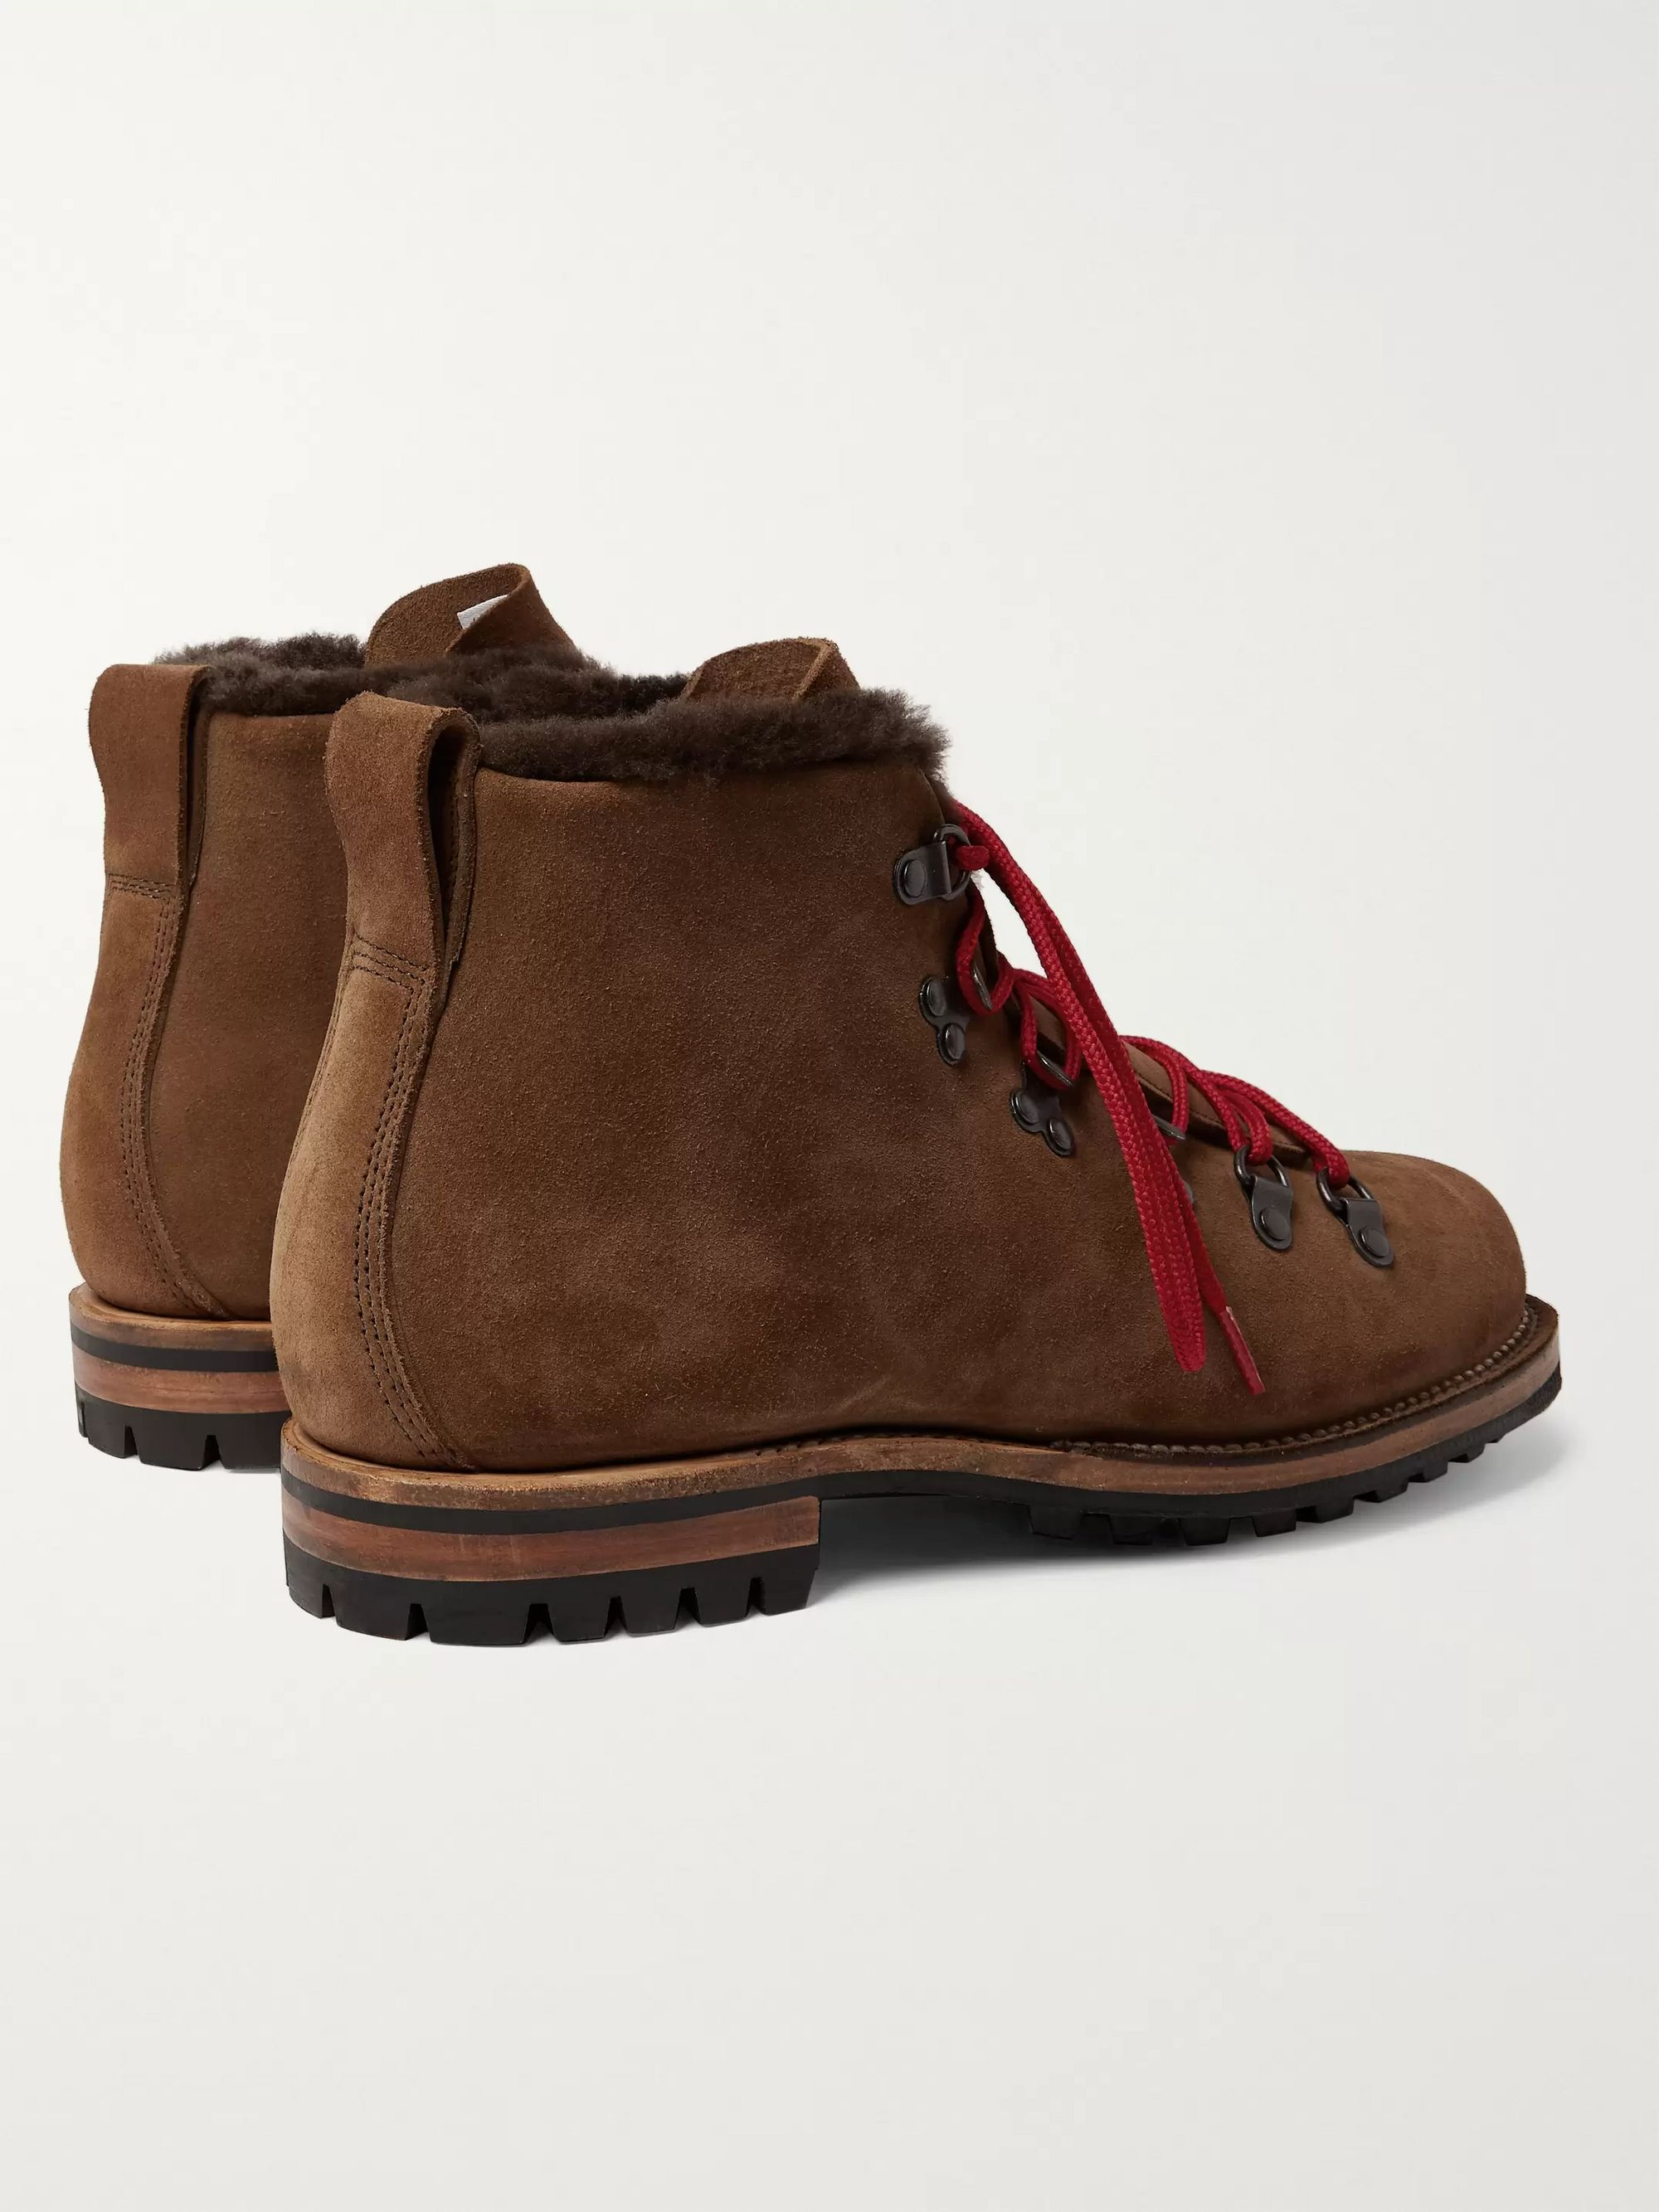 Viberg Shearling-Lined Suede Hiking Boots